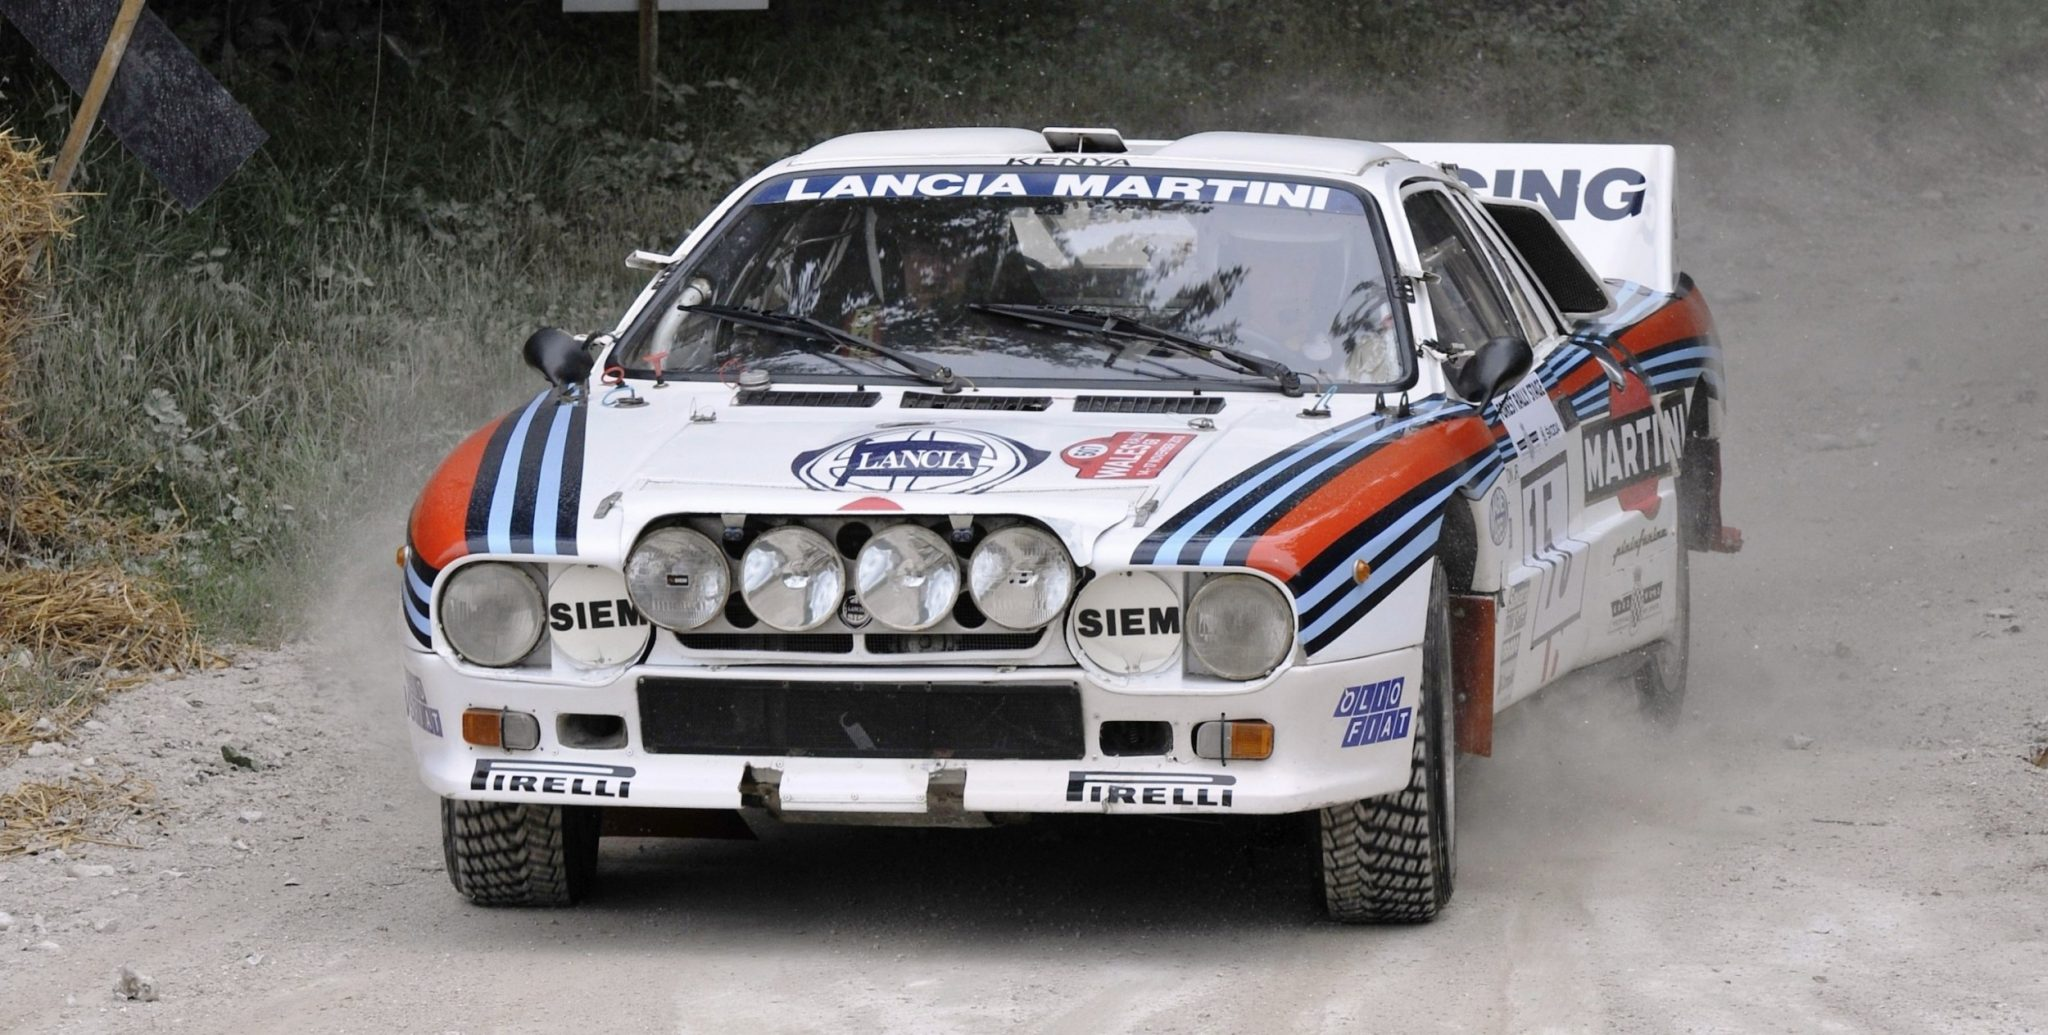 https://www.supercars.net/blog/wp-content/uploads/2016/05/Car-Revs-Daily.com-Rally-Legends-1983-Lancia-Beta-Montecarlo-and-1982-Lancia-037-at-Goodwood-2014-6.jpg